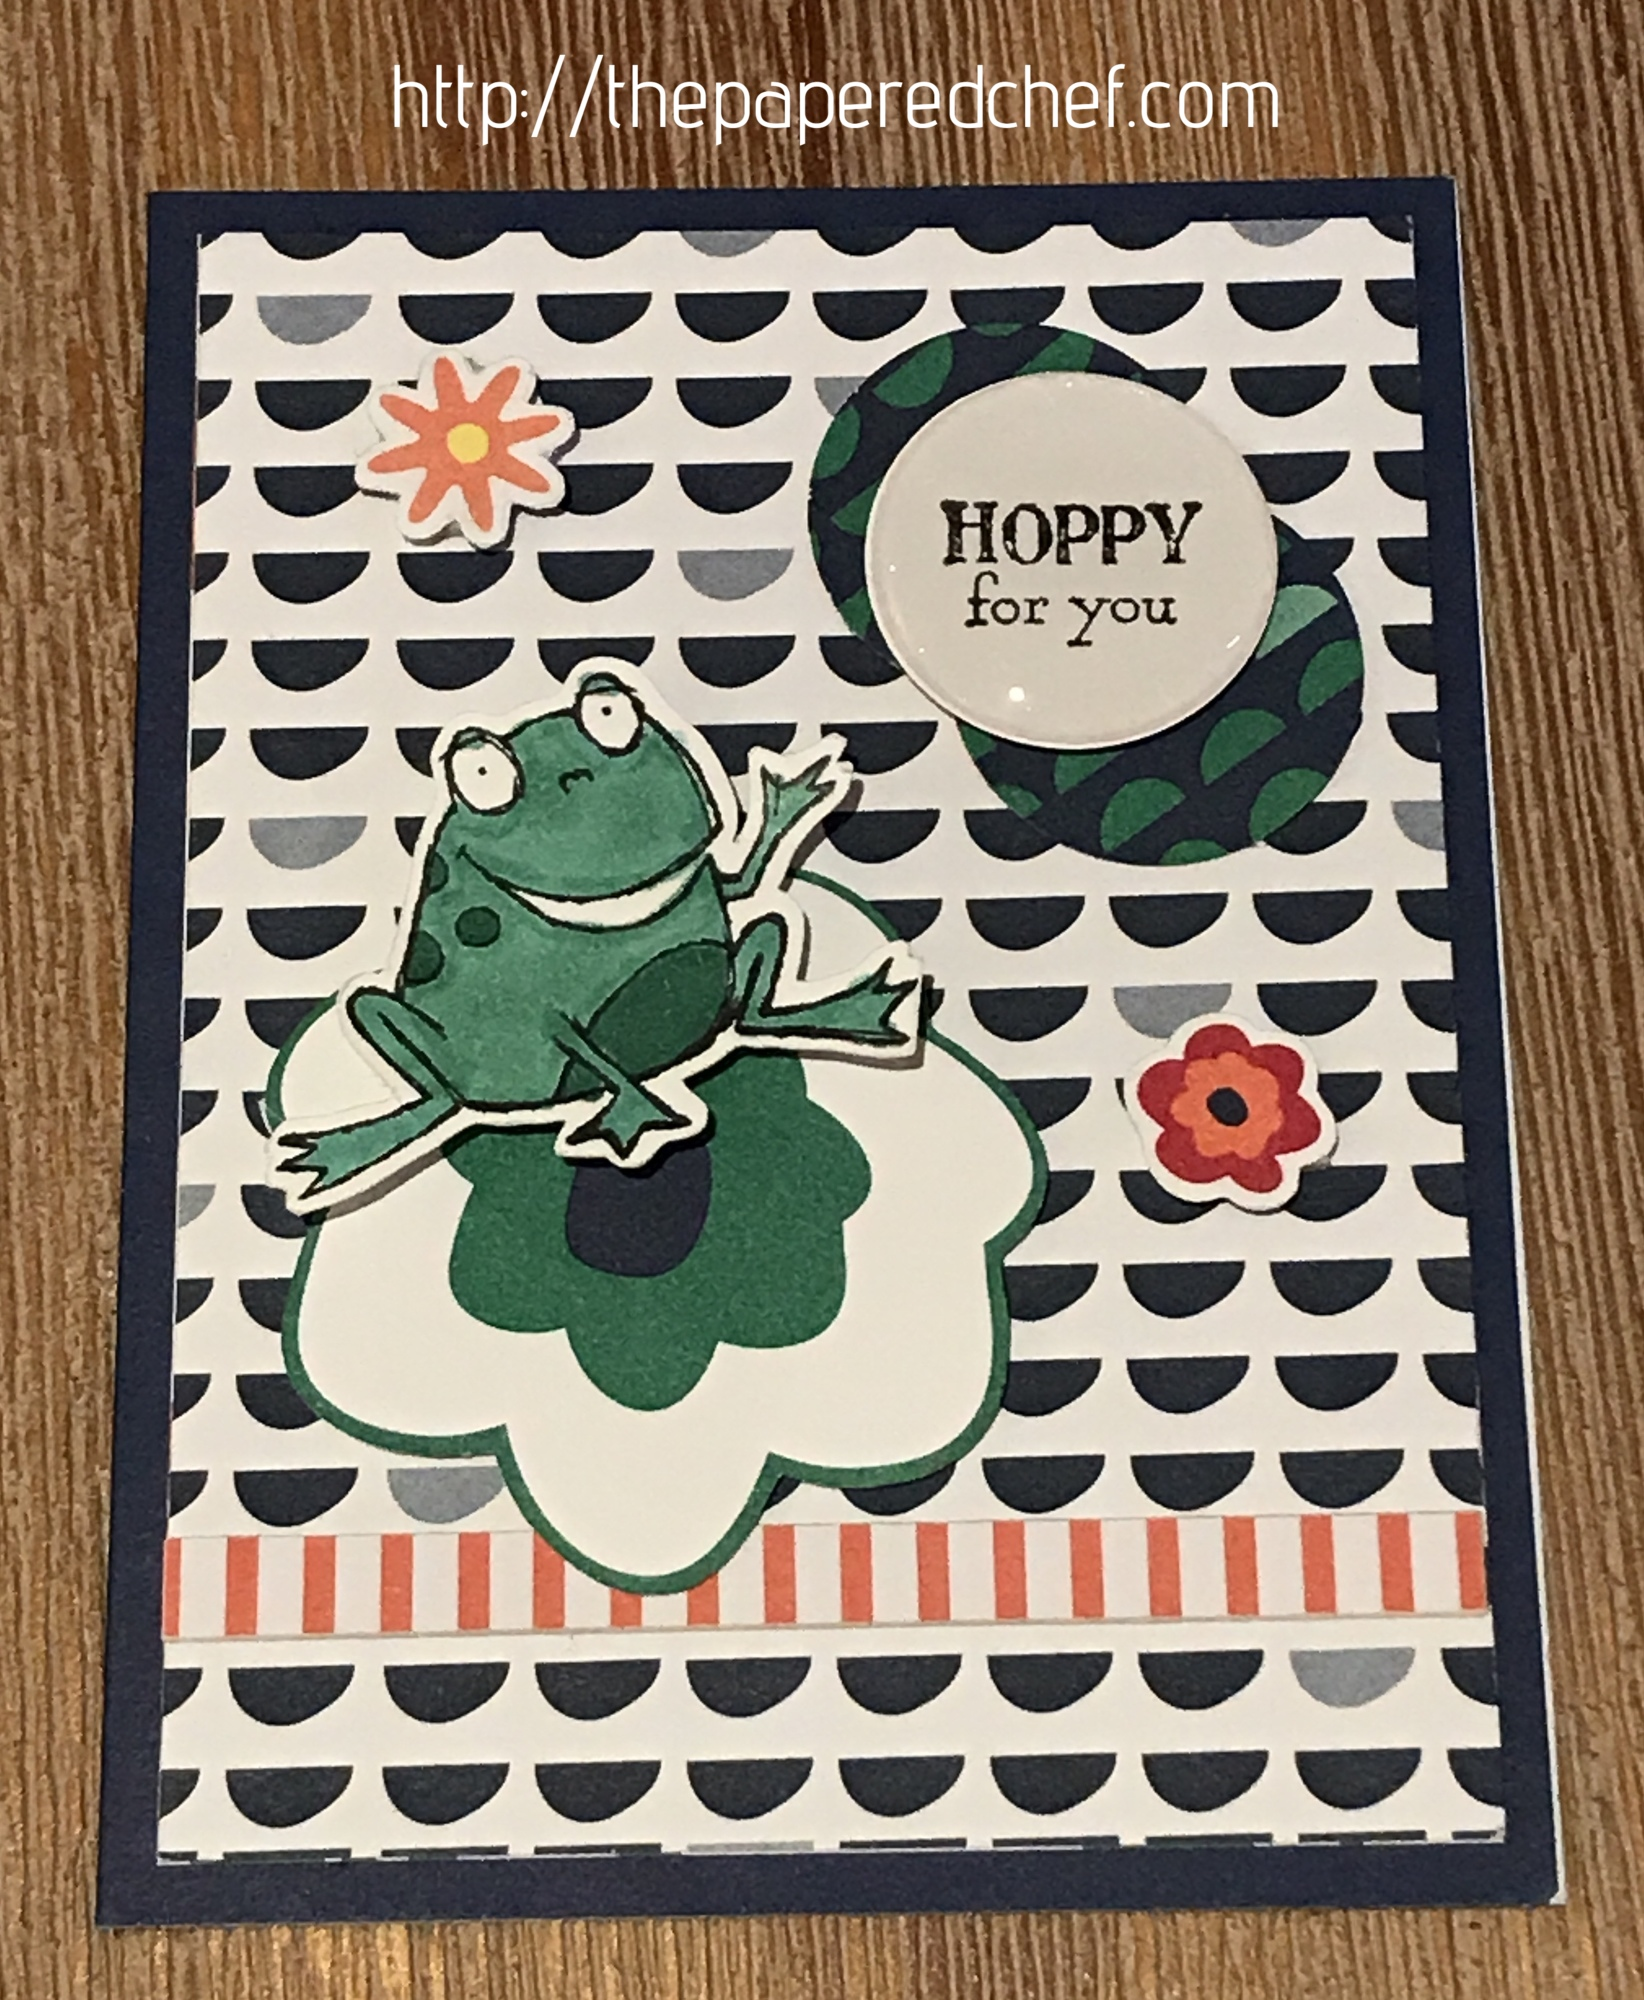 So Hoppy Together - Happiness Blooms